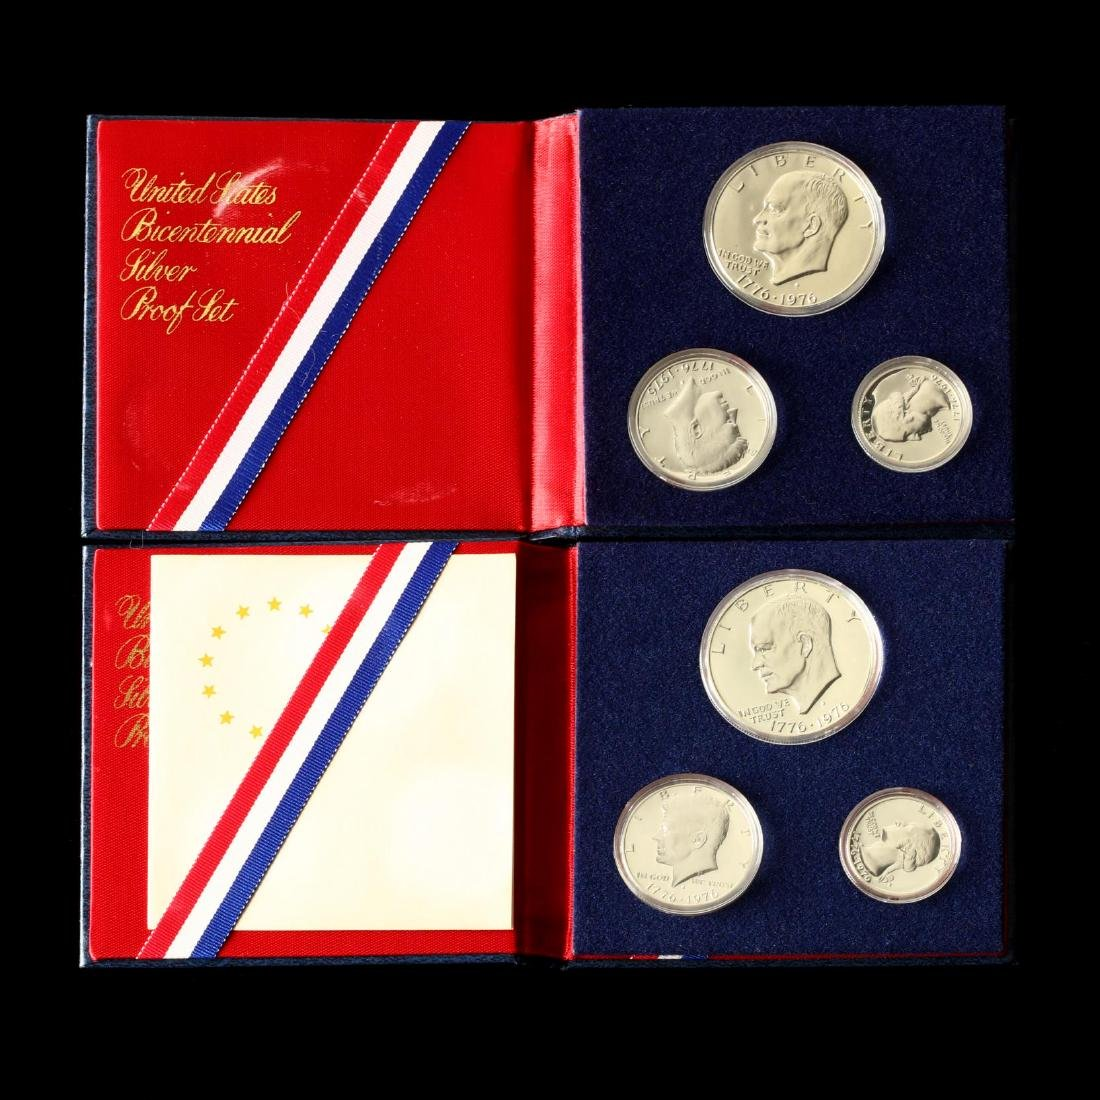 Two Three-Piece Bicentennial Silver Proof Sets